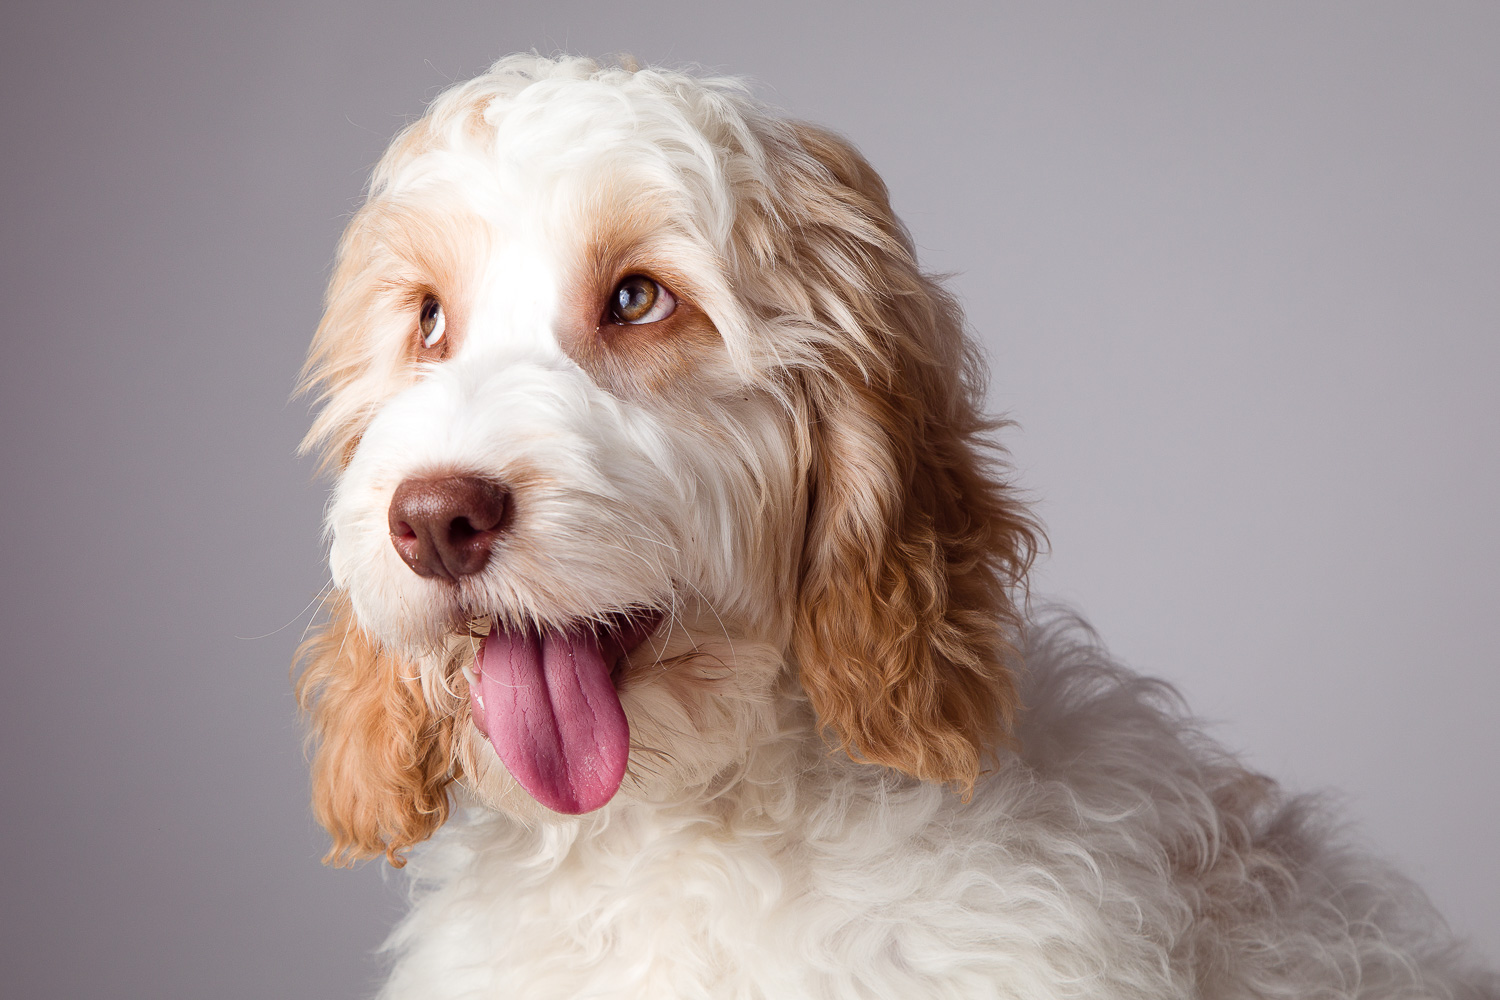 Cockapoo on grey background with tongue out